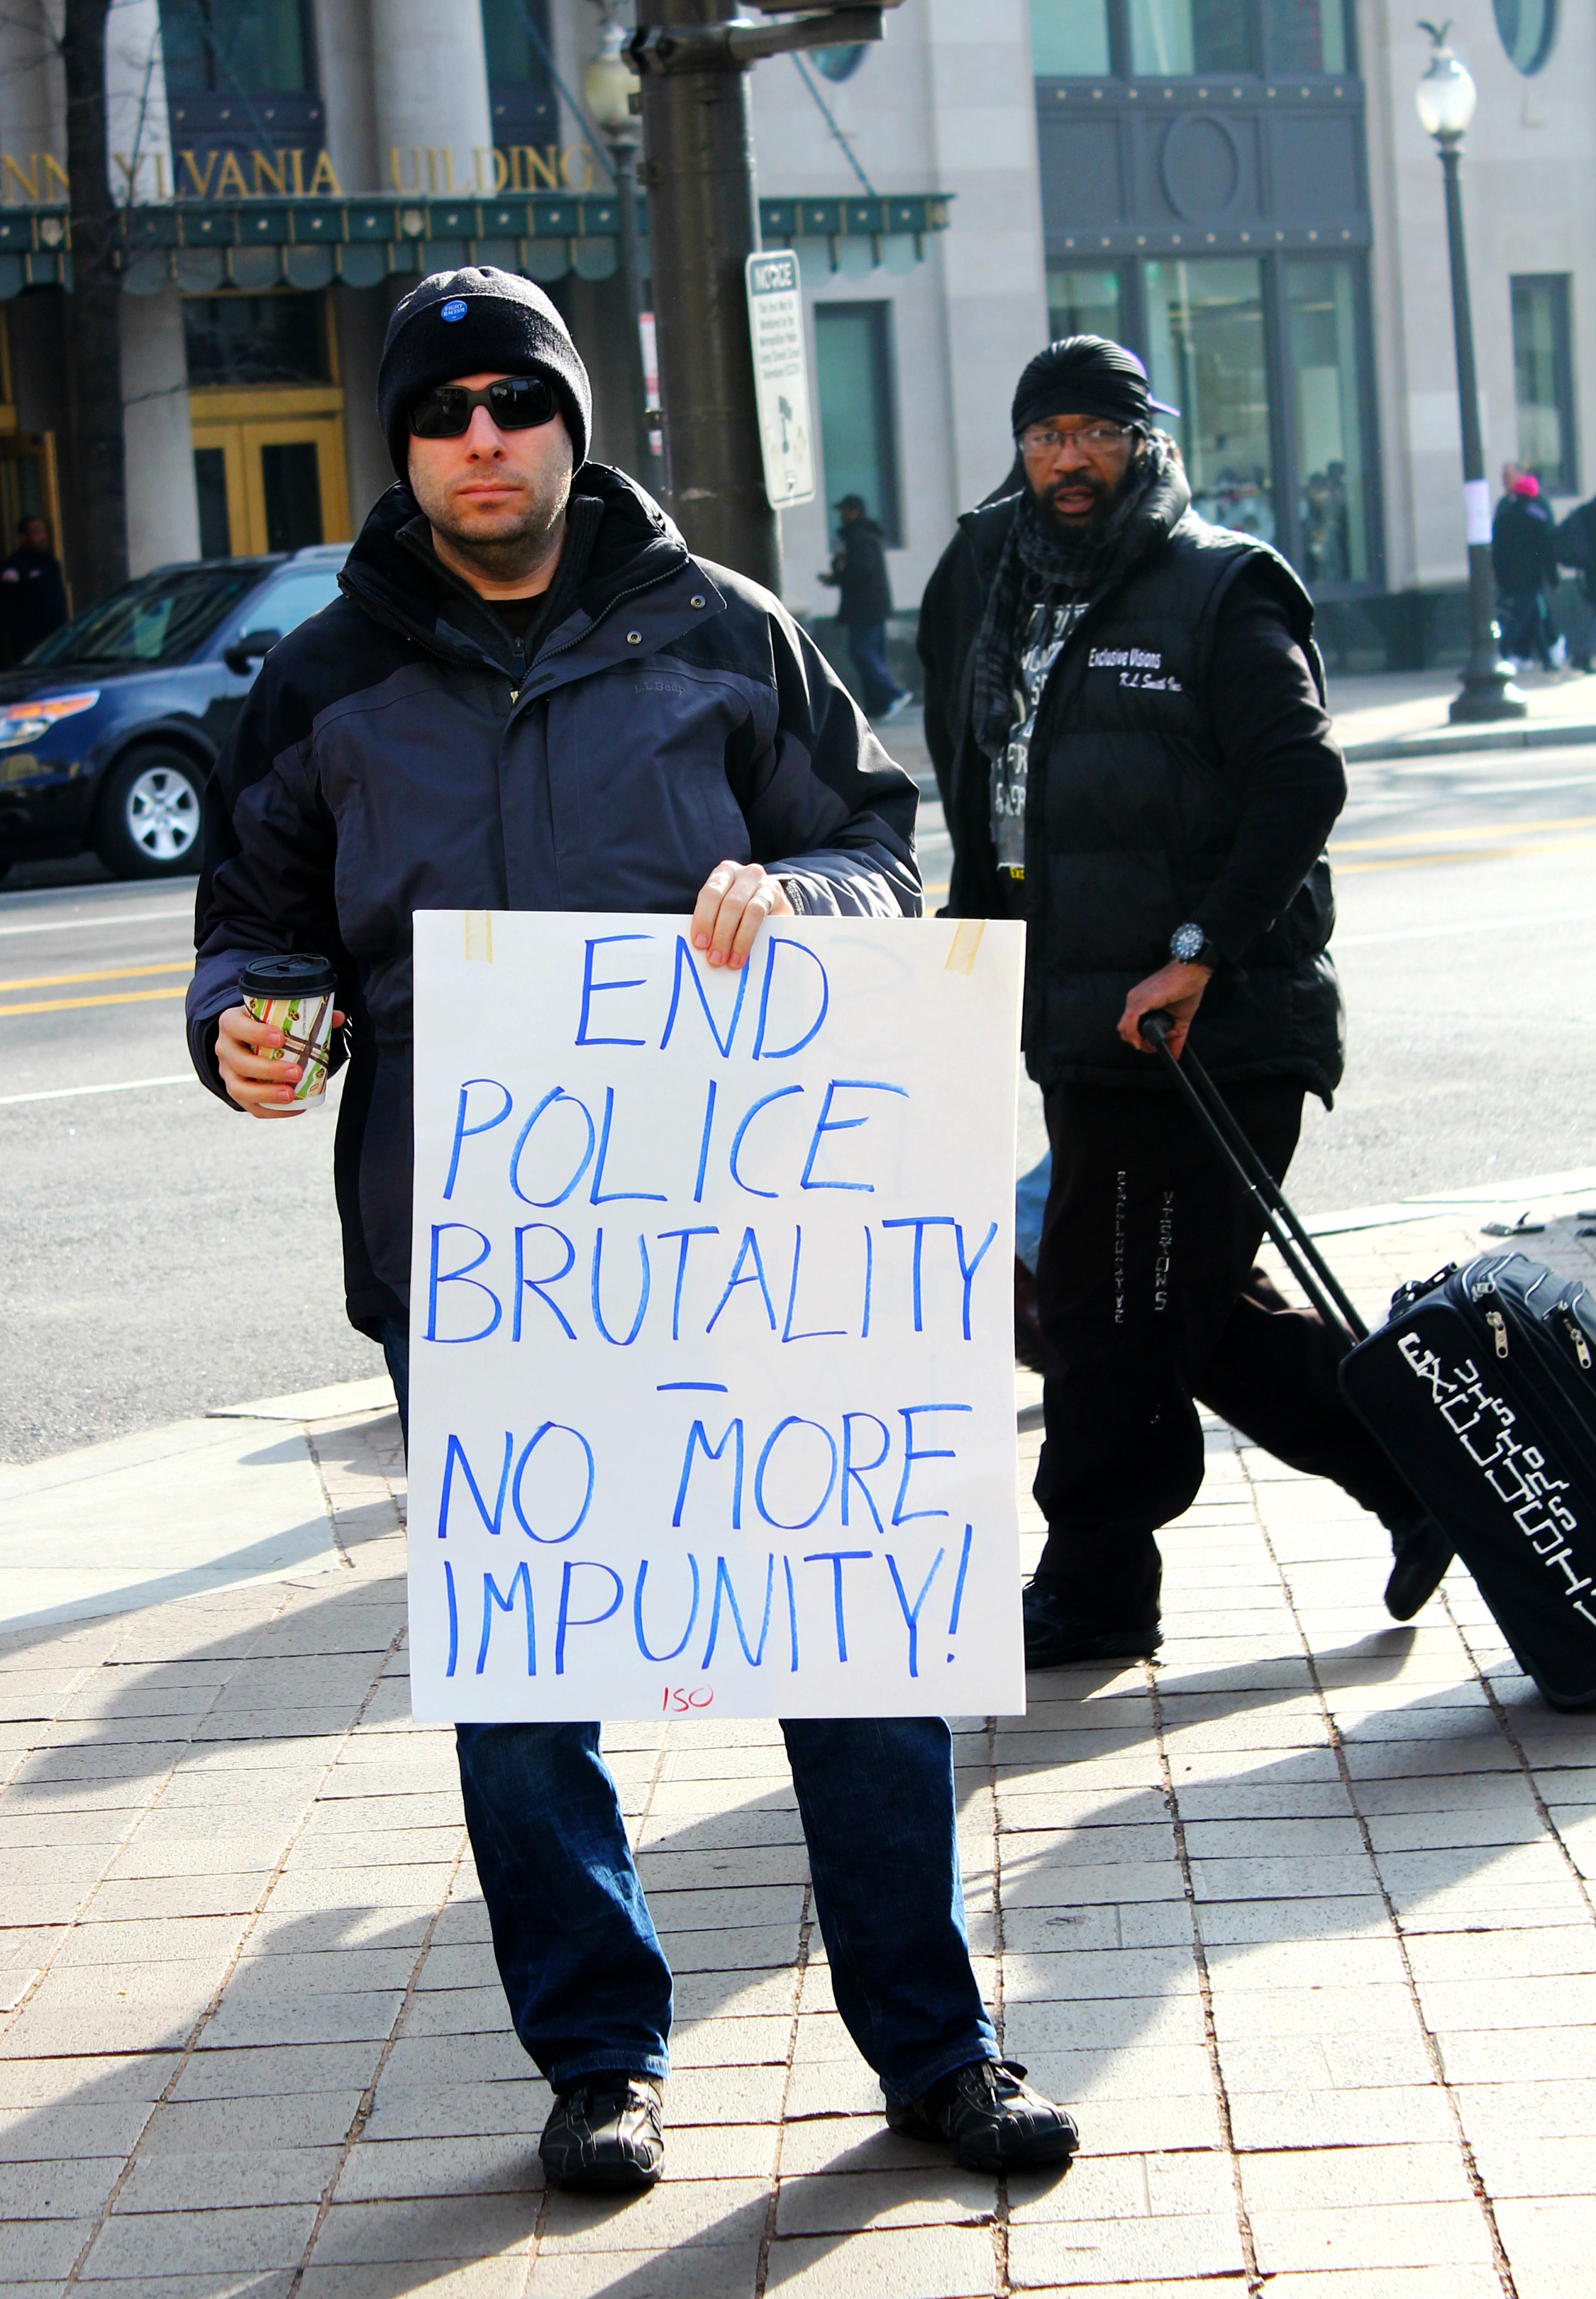 end police brutality - March Against Police Brutality in DC